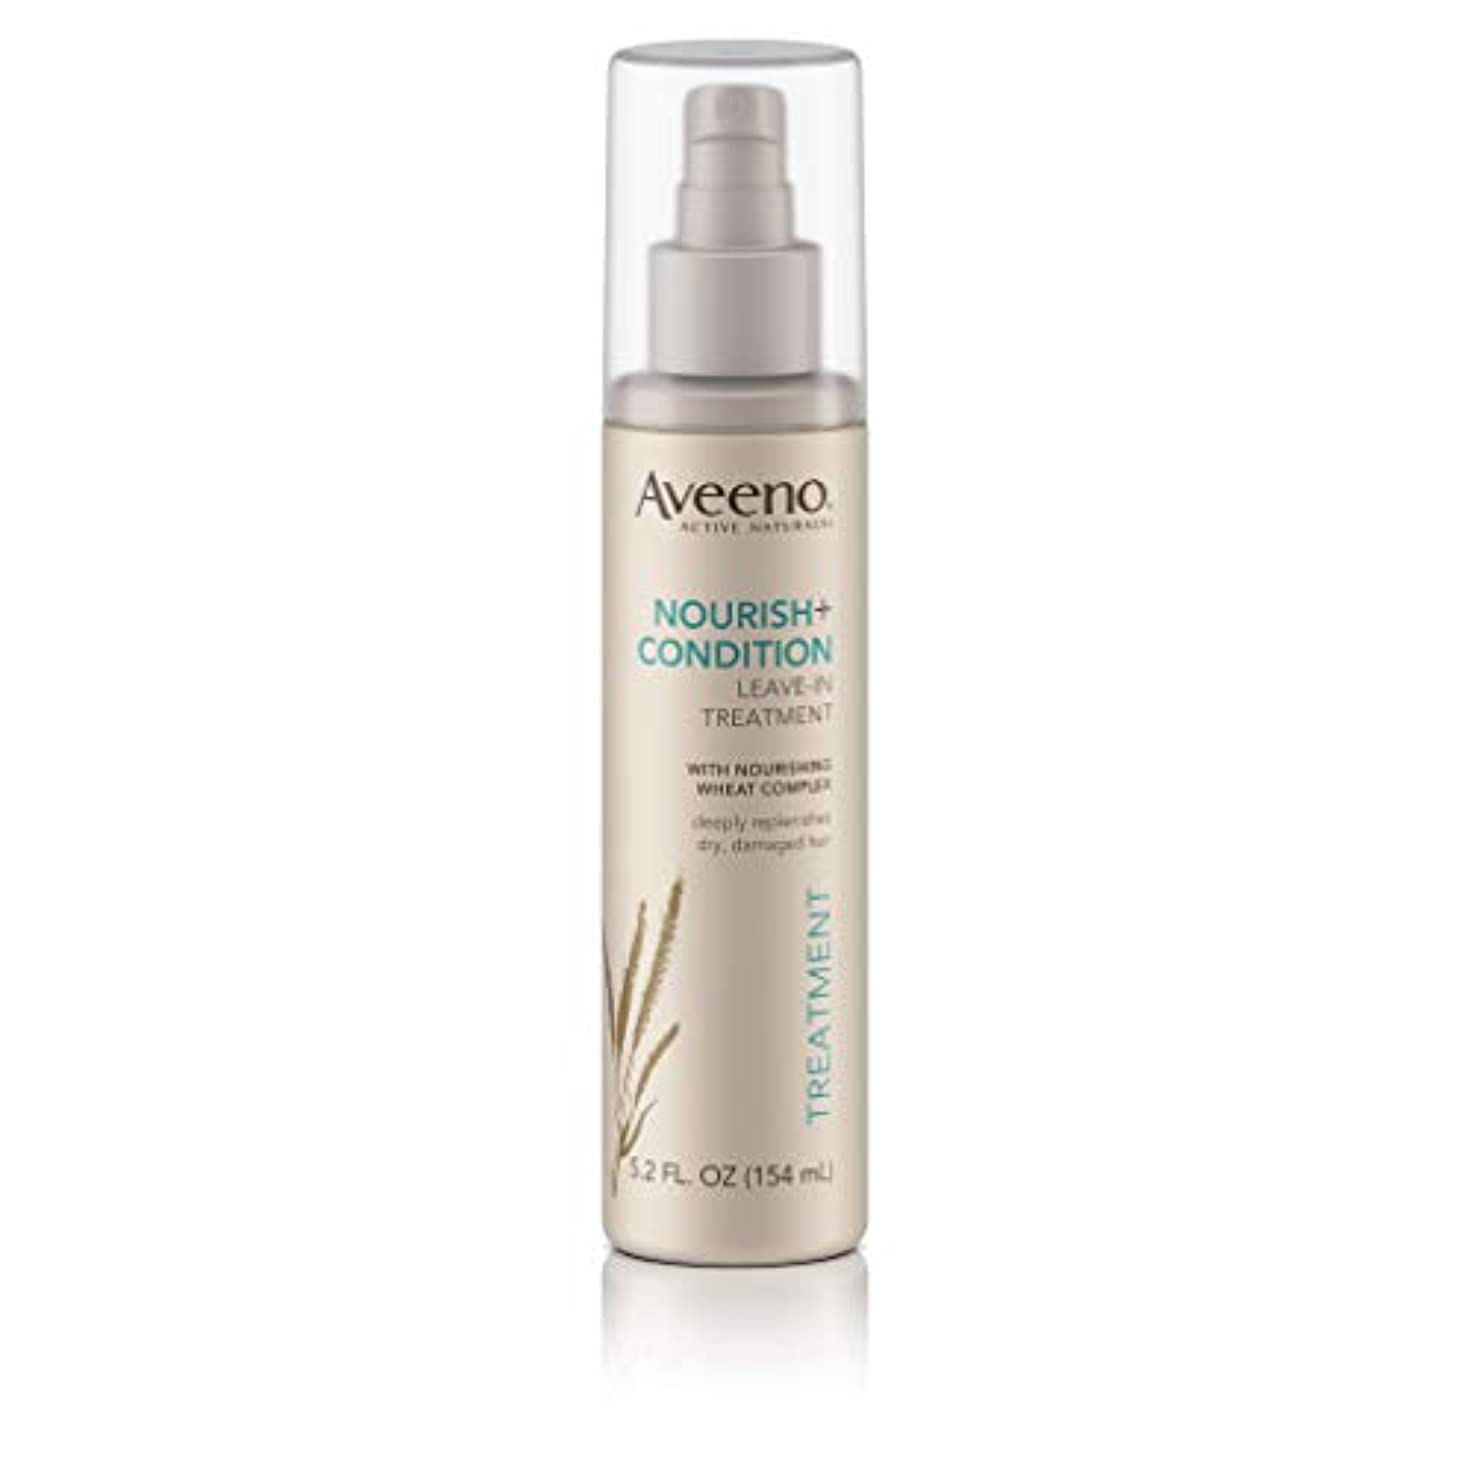 損なう遷移言い訳Aveeno Nourish+ Condition Treatment Spray 150g (並行輸入品)